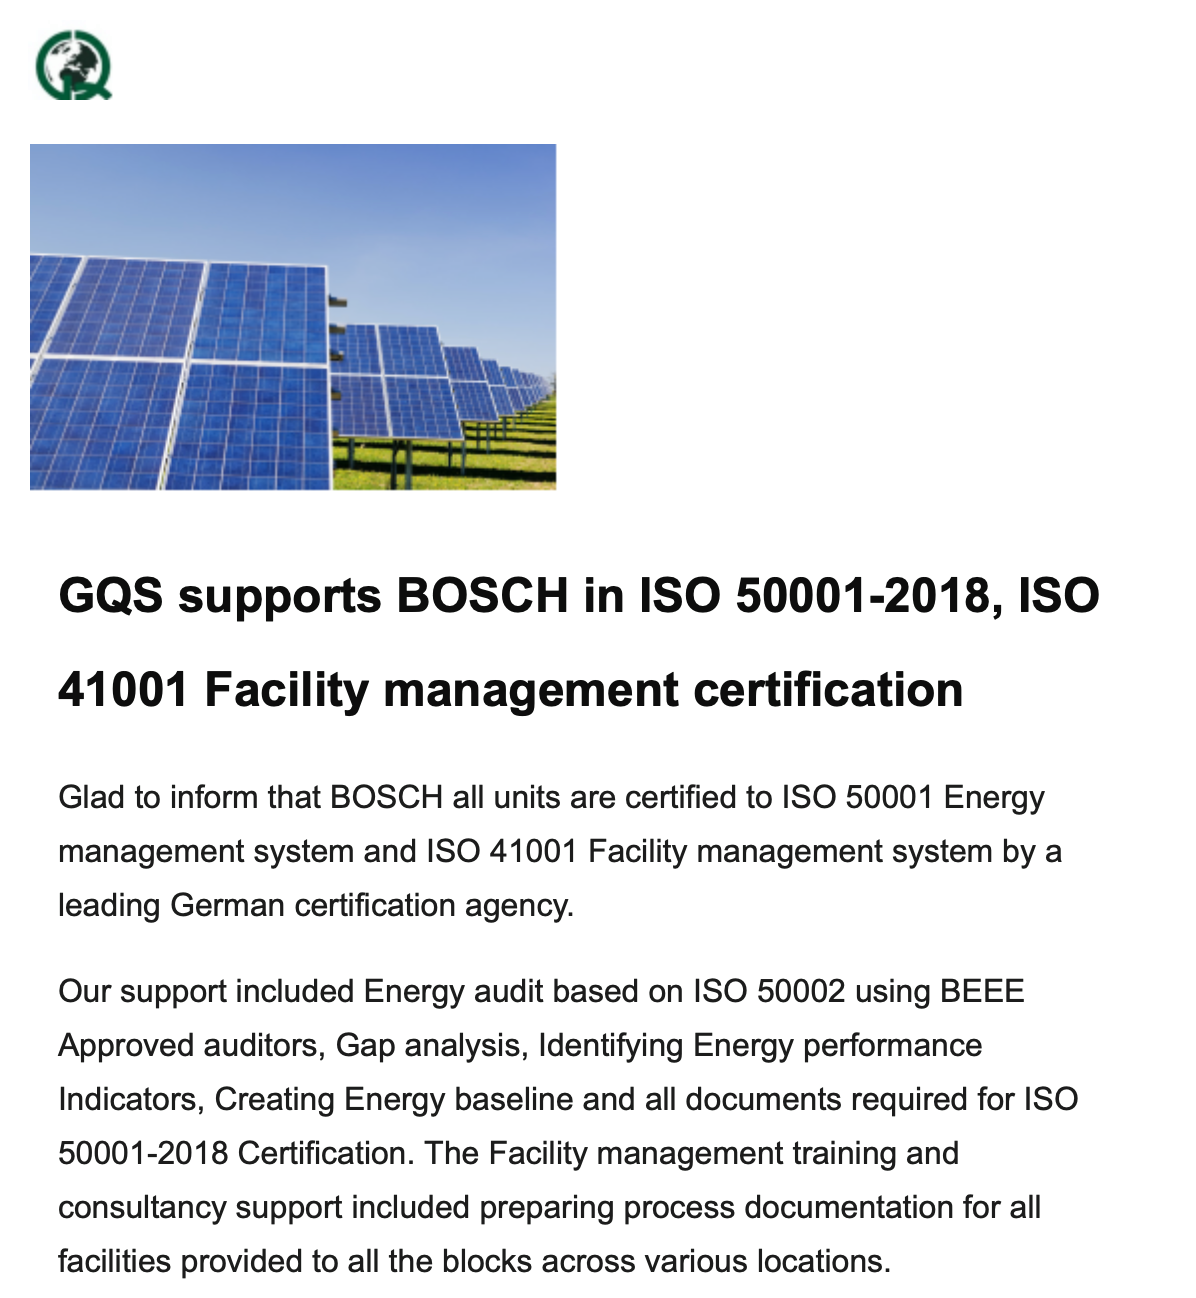 ISO 50001, ISO 41001 By a German Agency